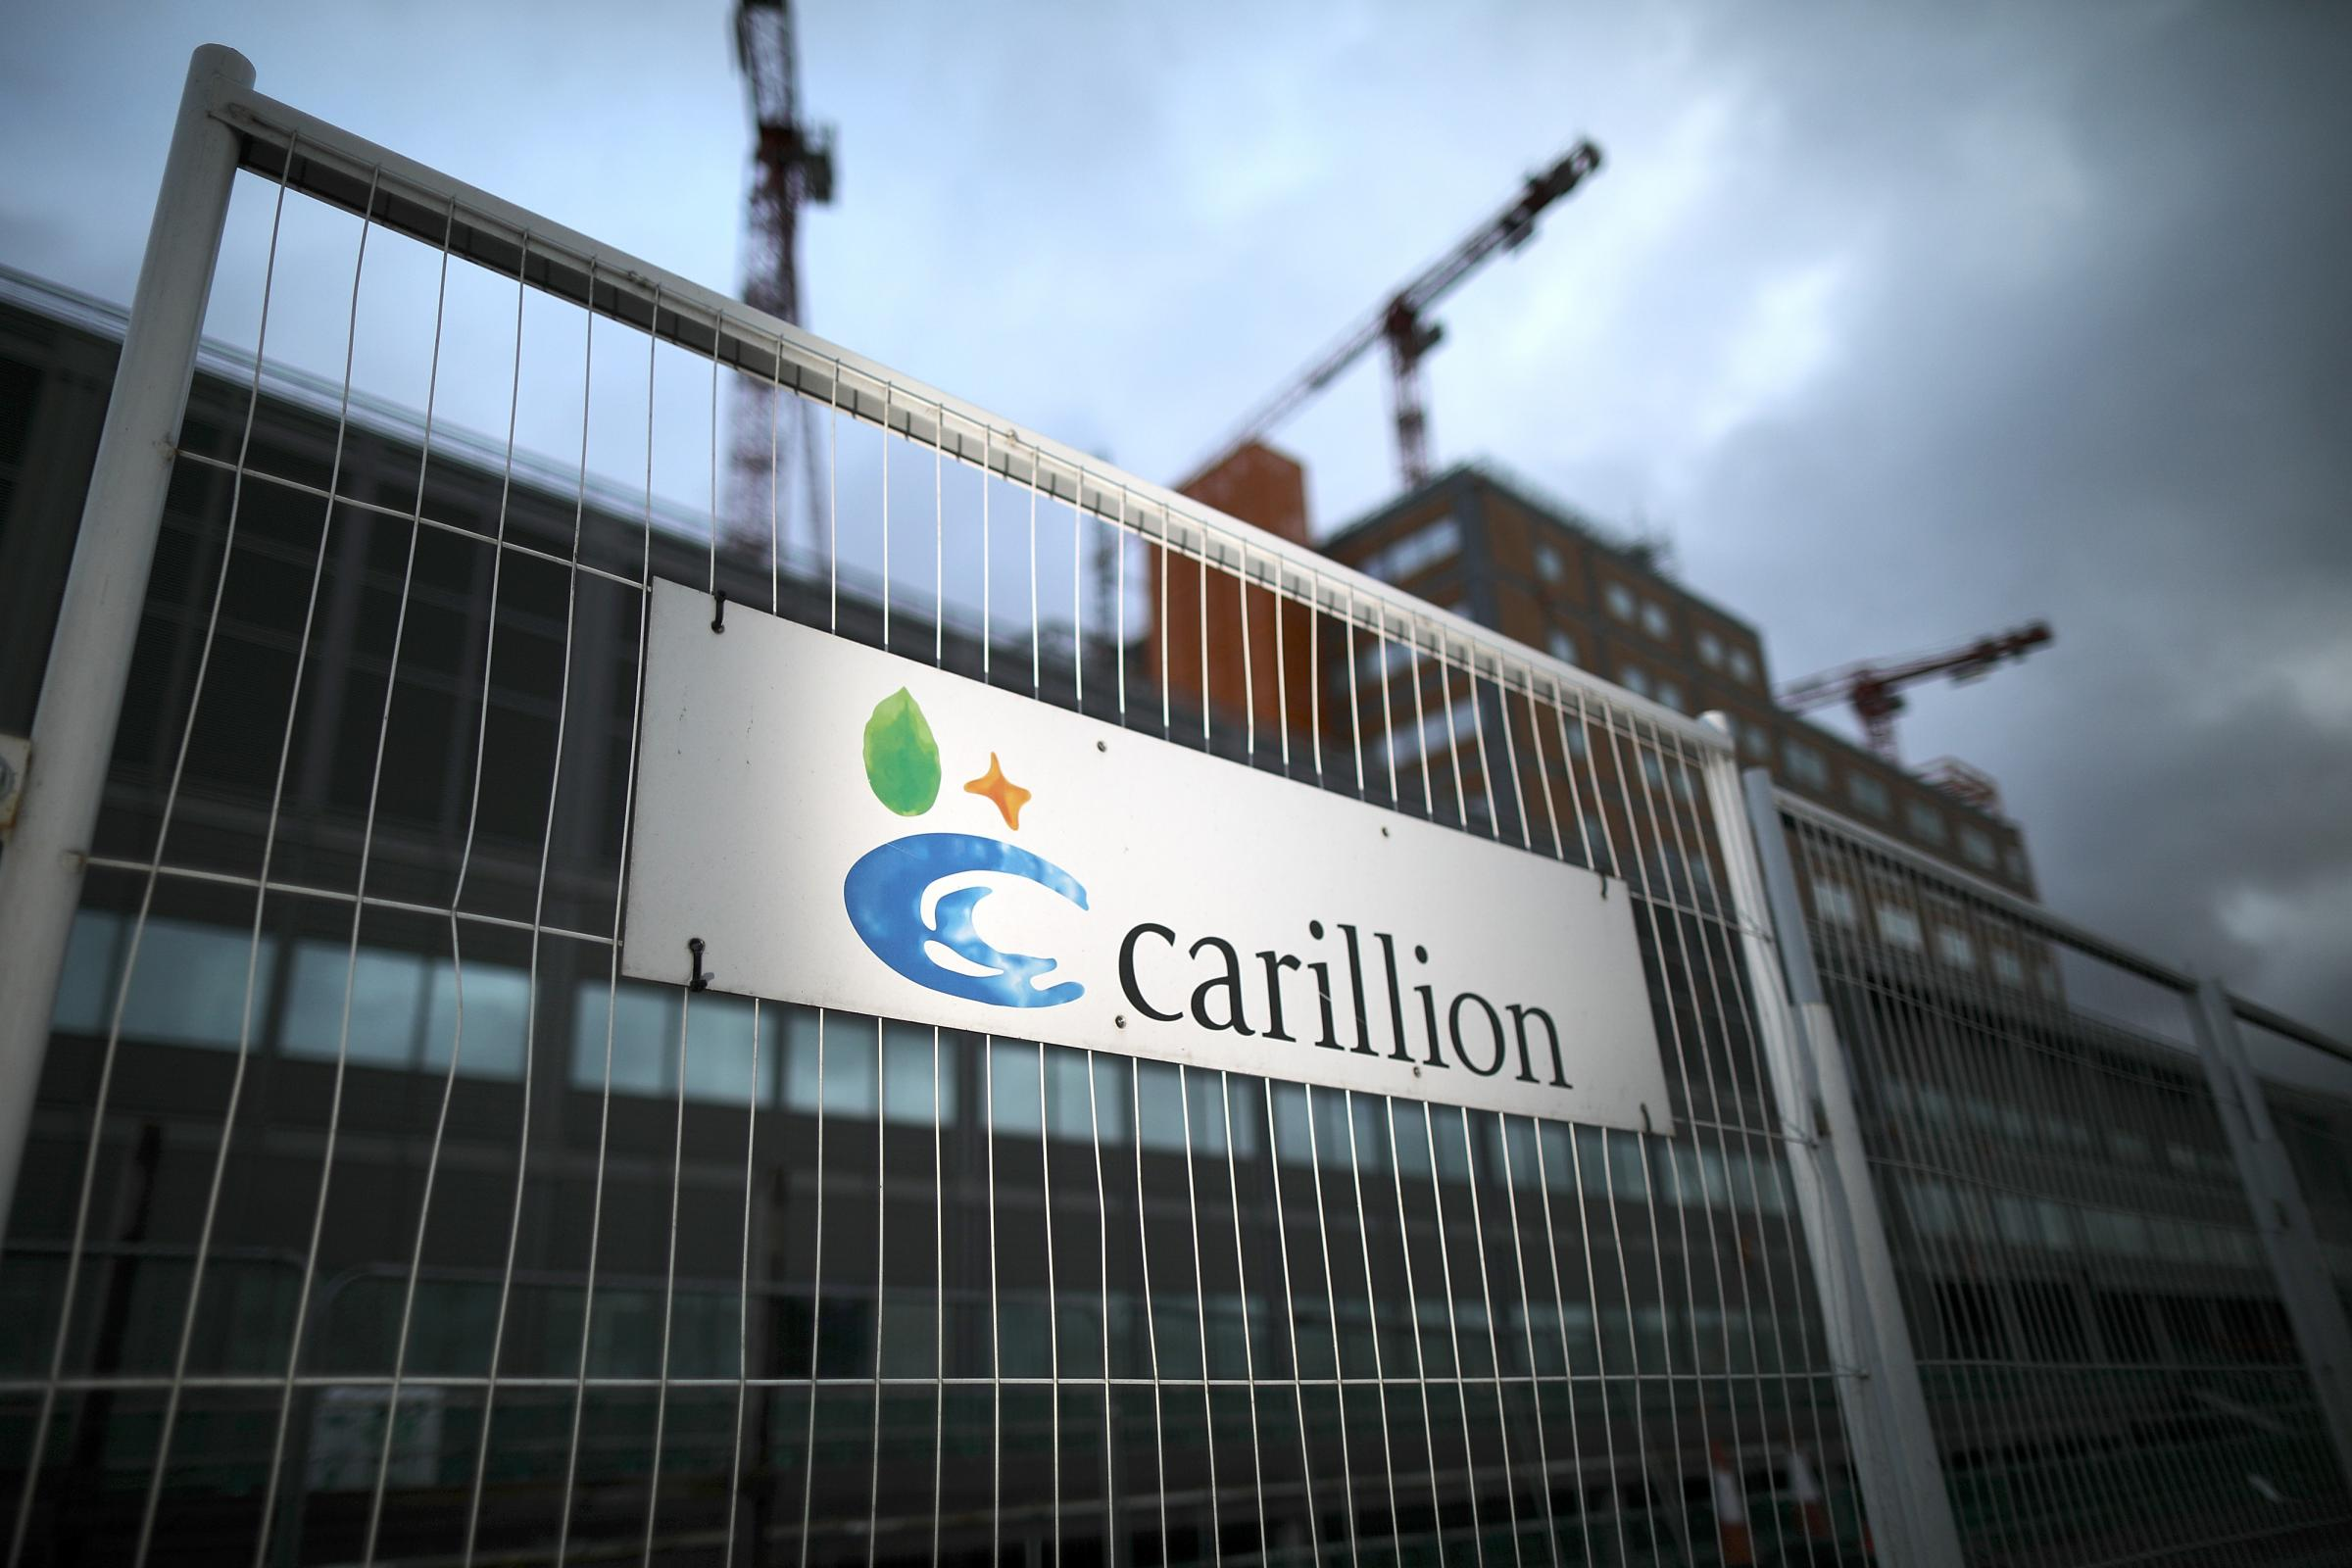 Carillion builds everything from HS2 to the Aberdeen bypass and runs everything from school dinners to hospital beds.